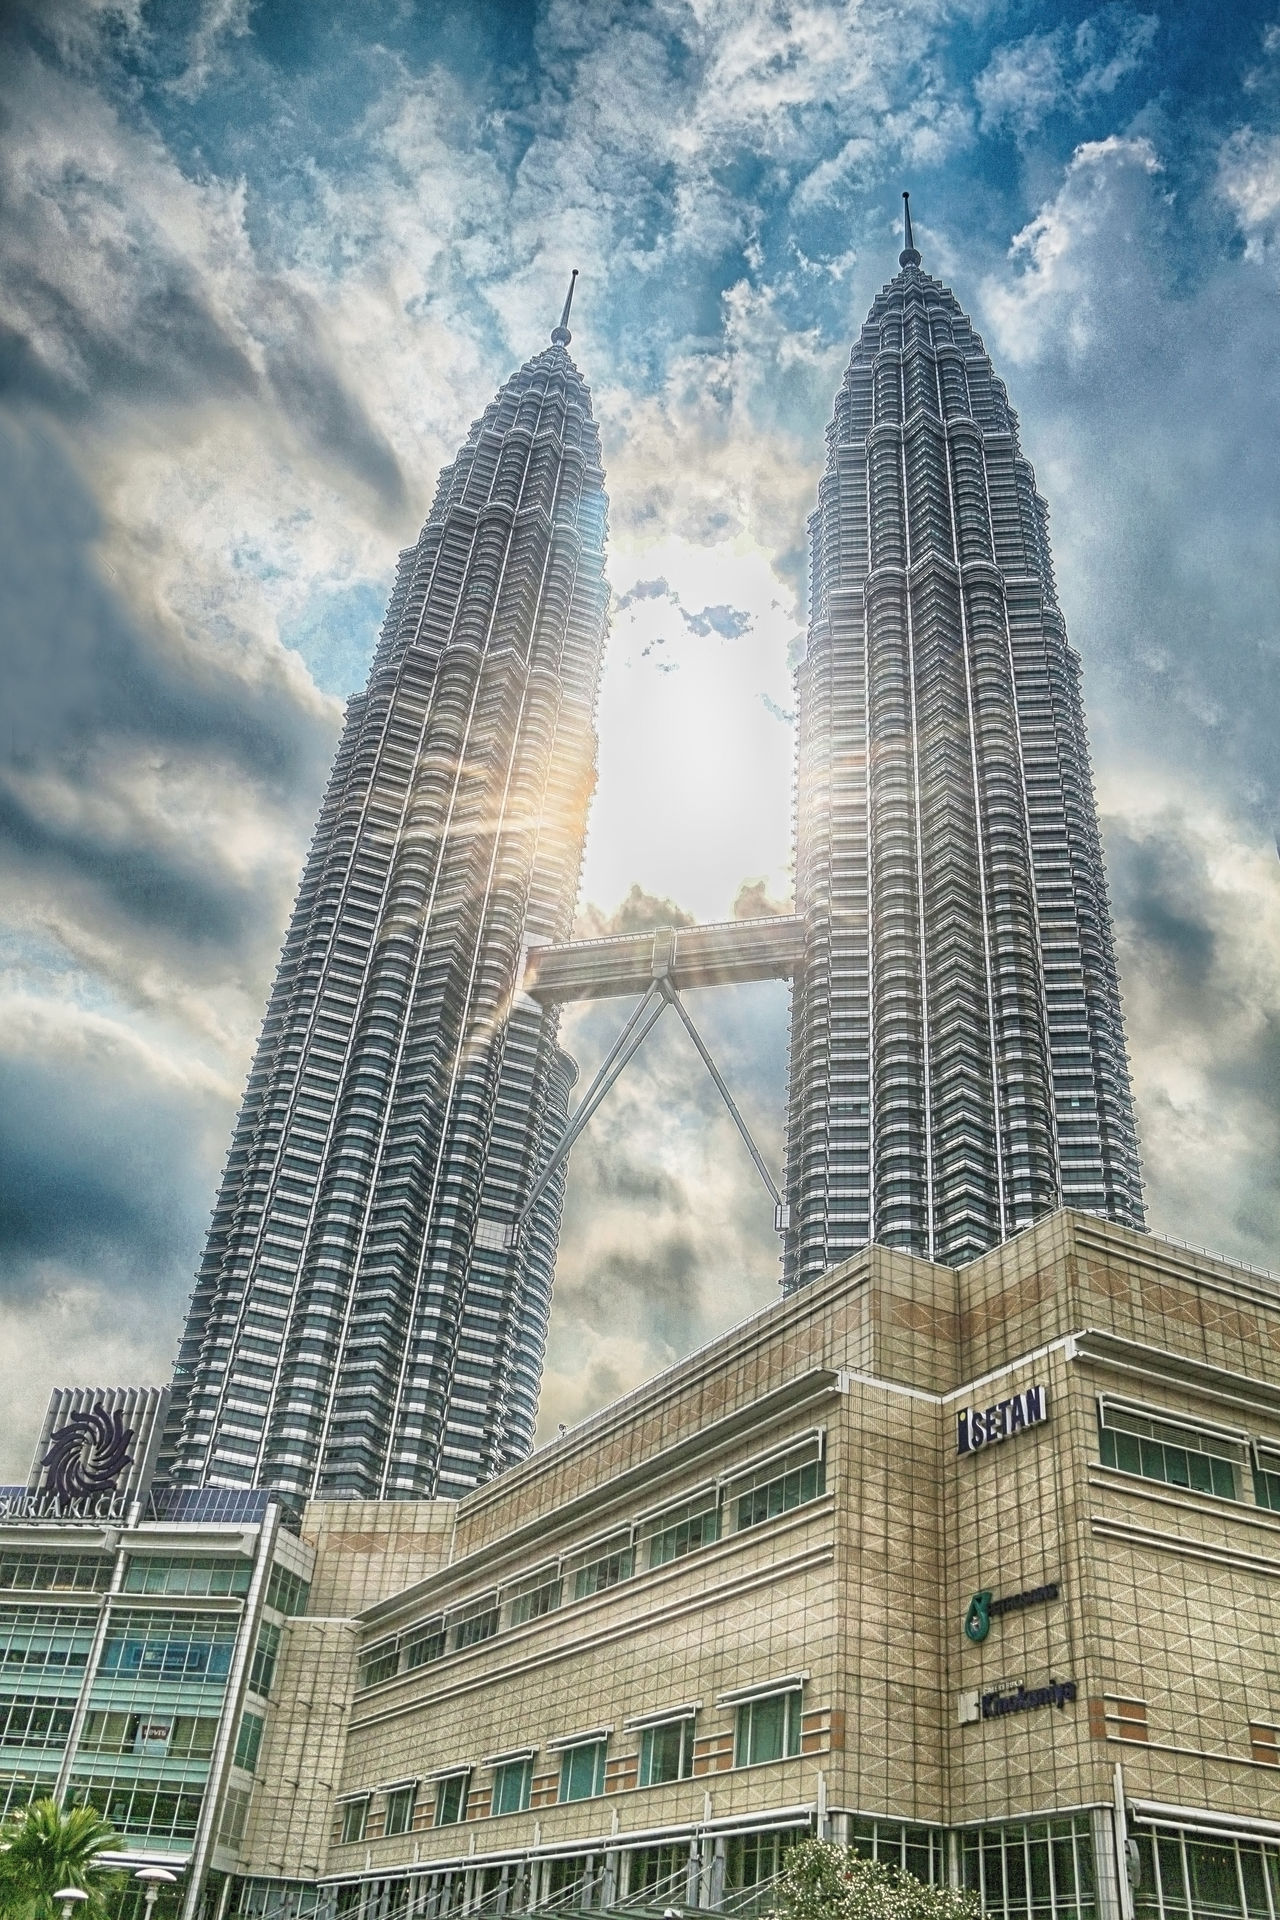 Architecture Building Exterior Built Structure City Cityscape Cloud - Sky Day KLCC Tower KLCC Twin Towers KLCC❤❤ Low Angle View Modern No People Outdoors Sky Skyscraper Sunlight Tall - High Tower Travel Travel Destinations Urban Skyline